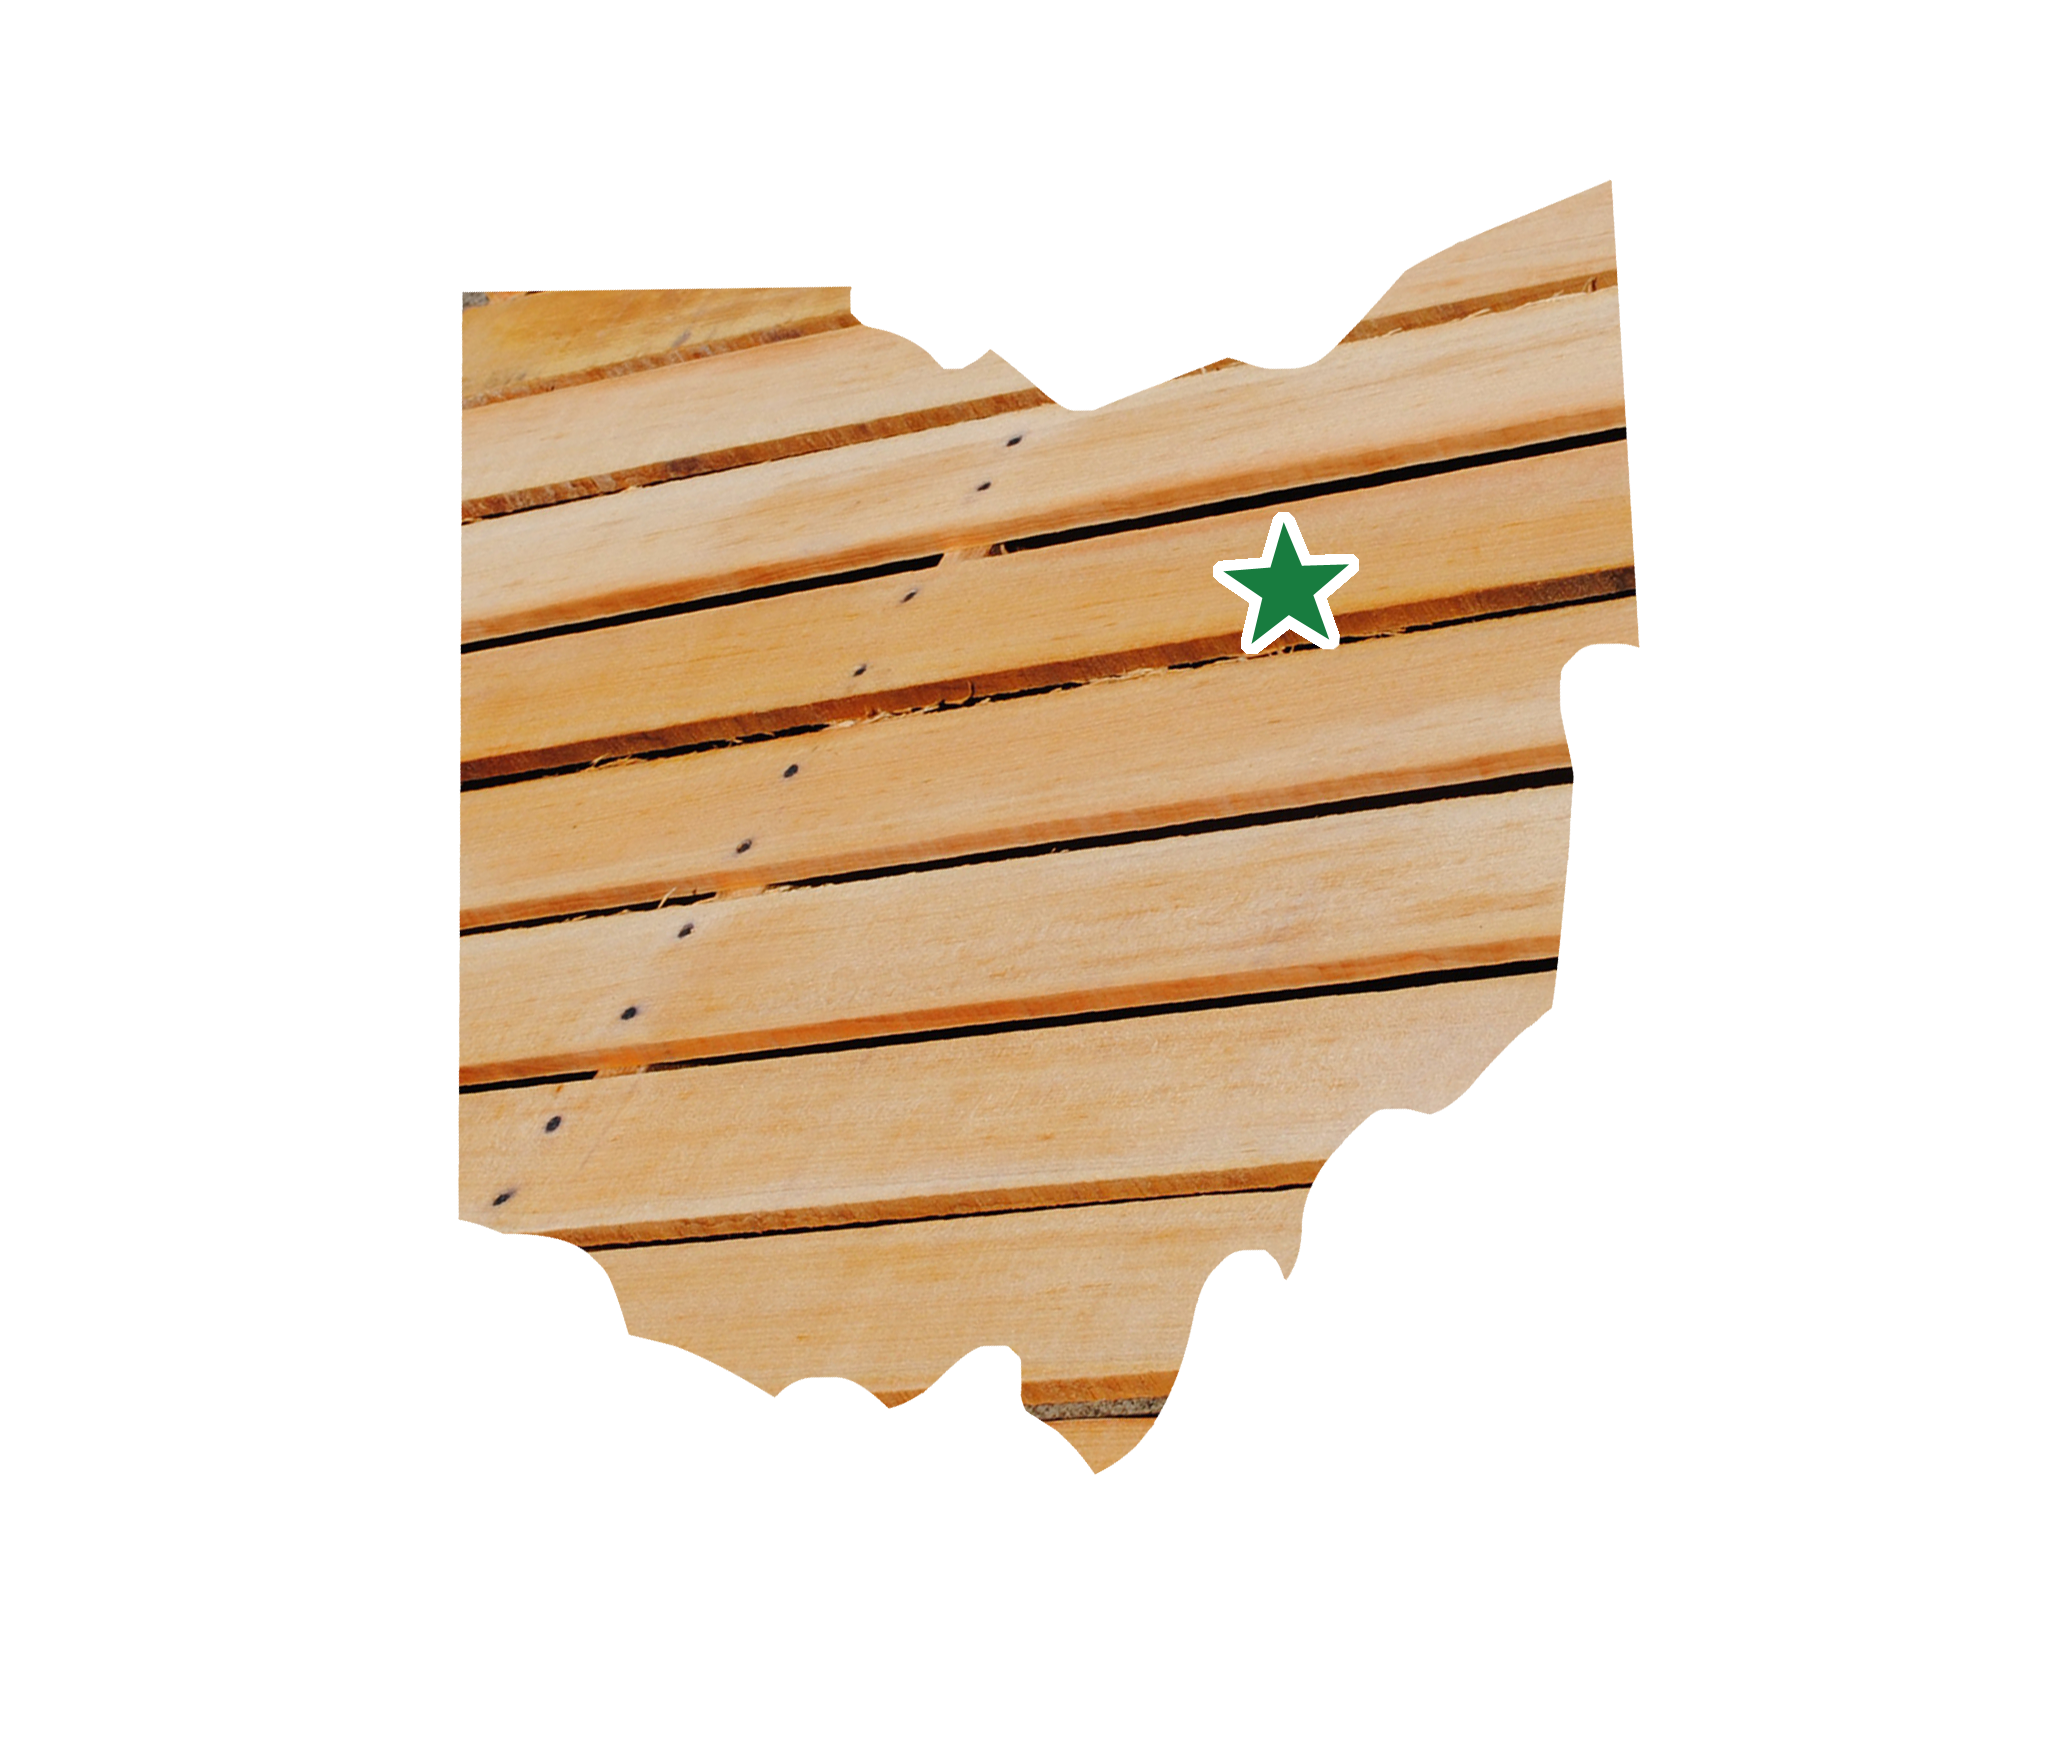 Wooden pallets packaging company. Firewood clipart block wood